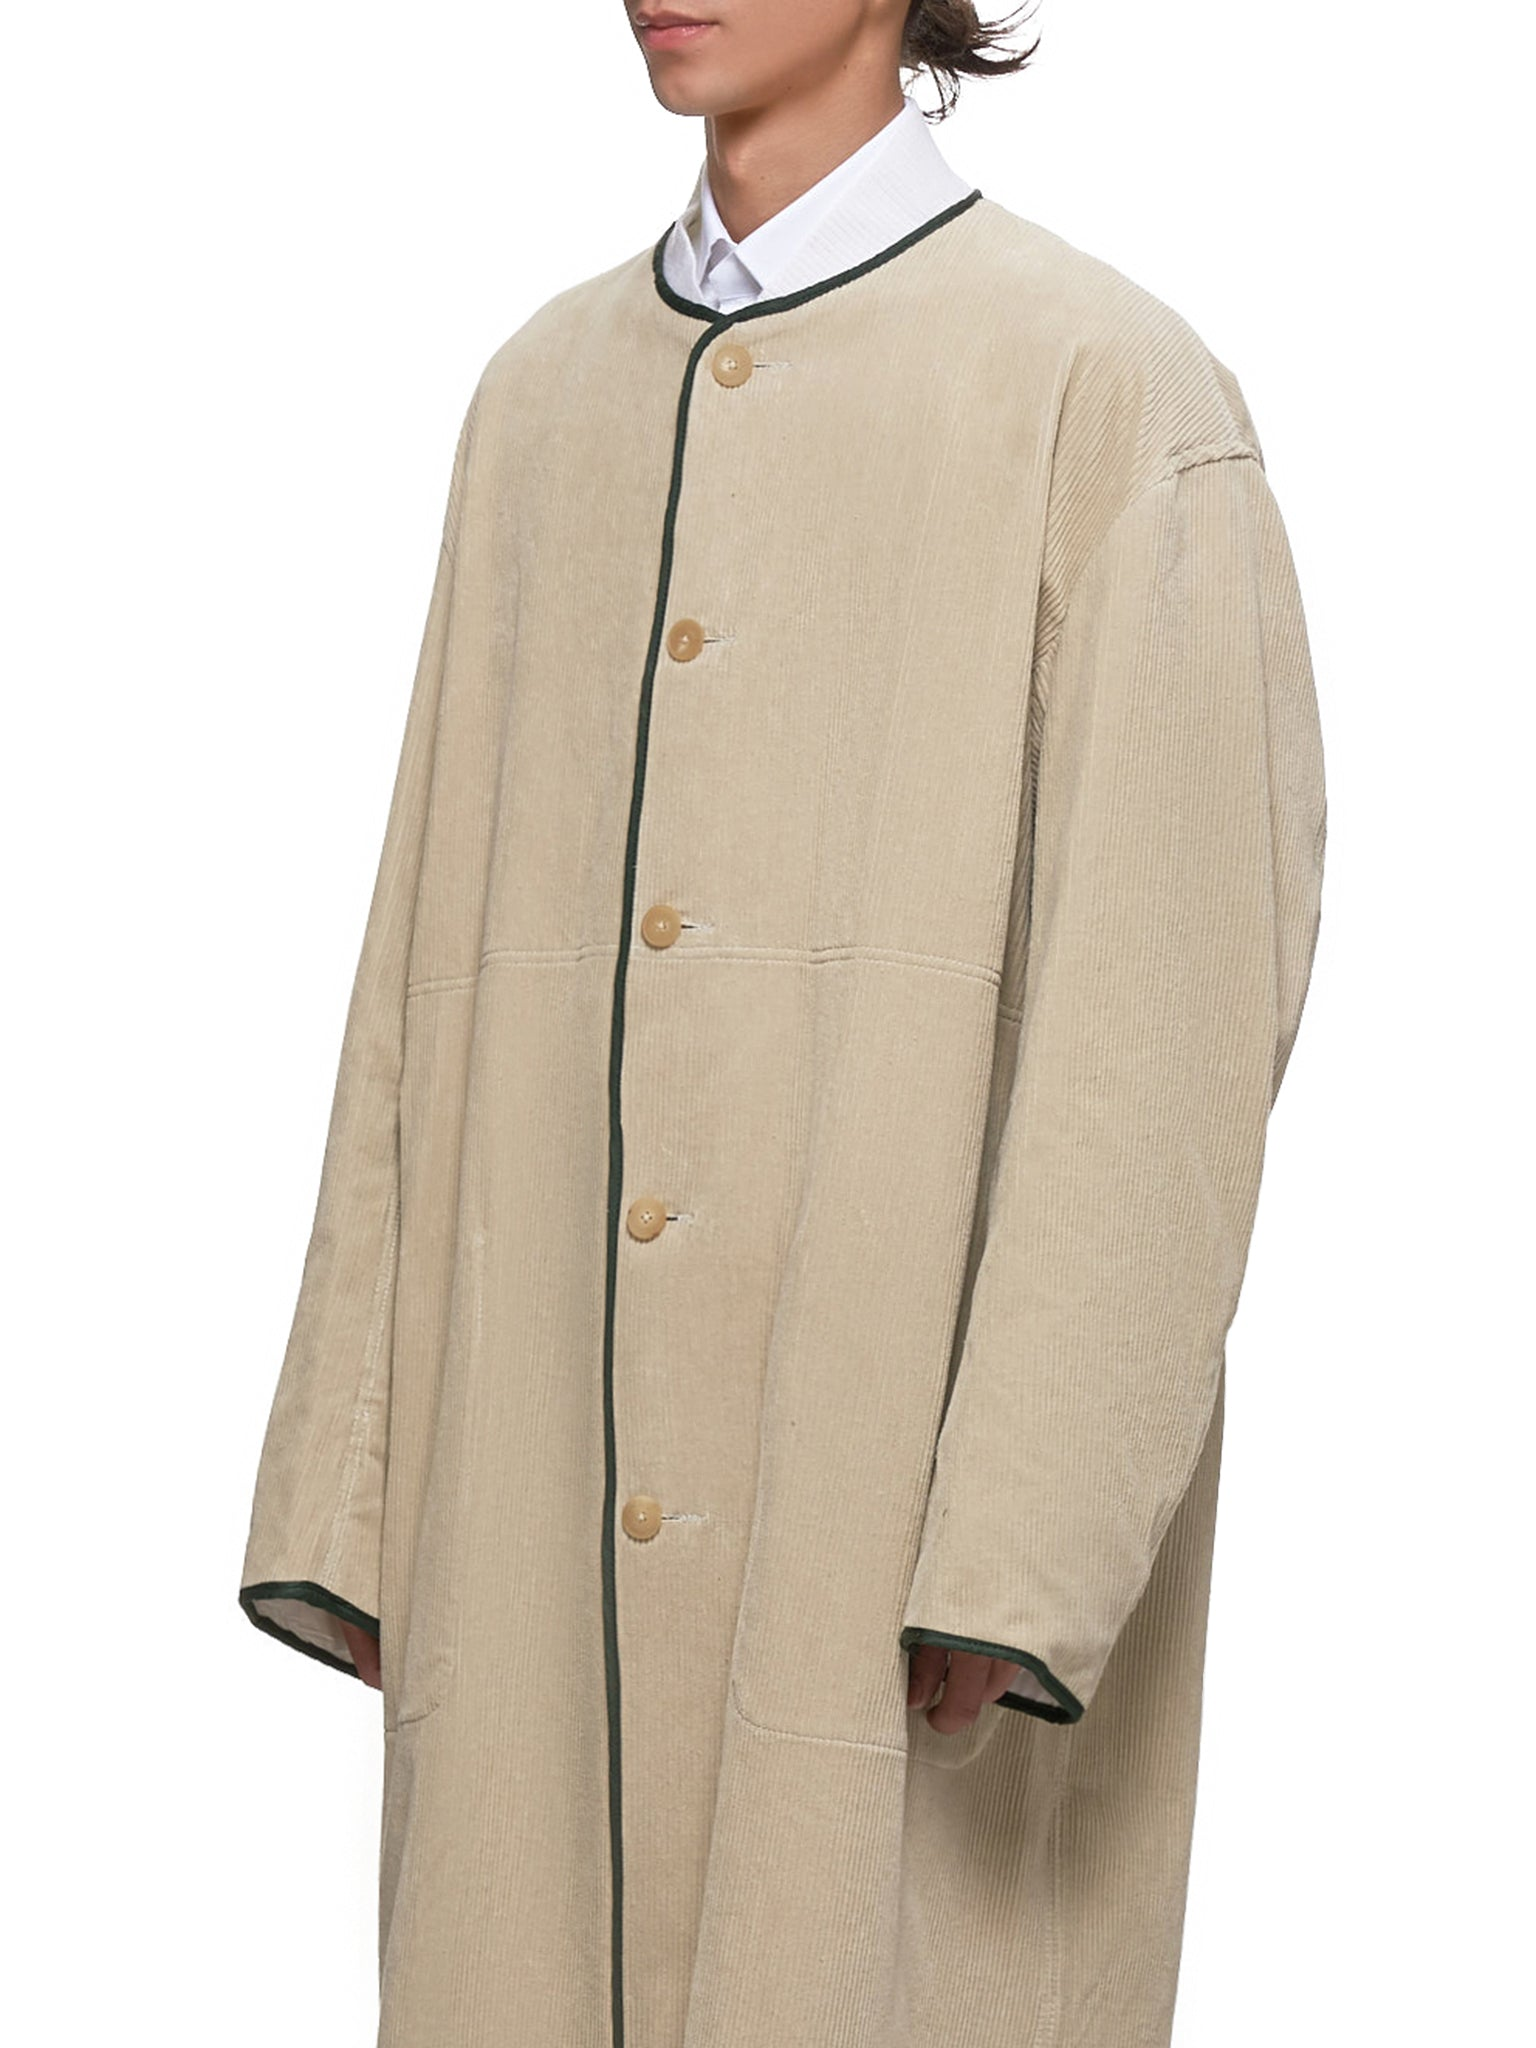 Haider Ackermann Coat - Hlorenzo Detail 1